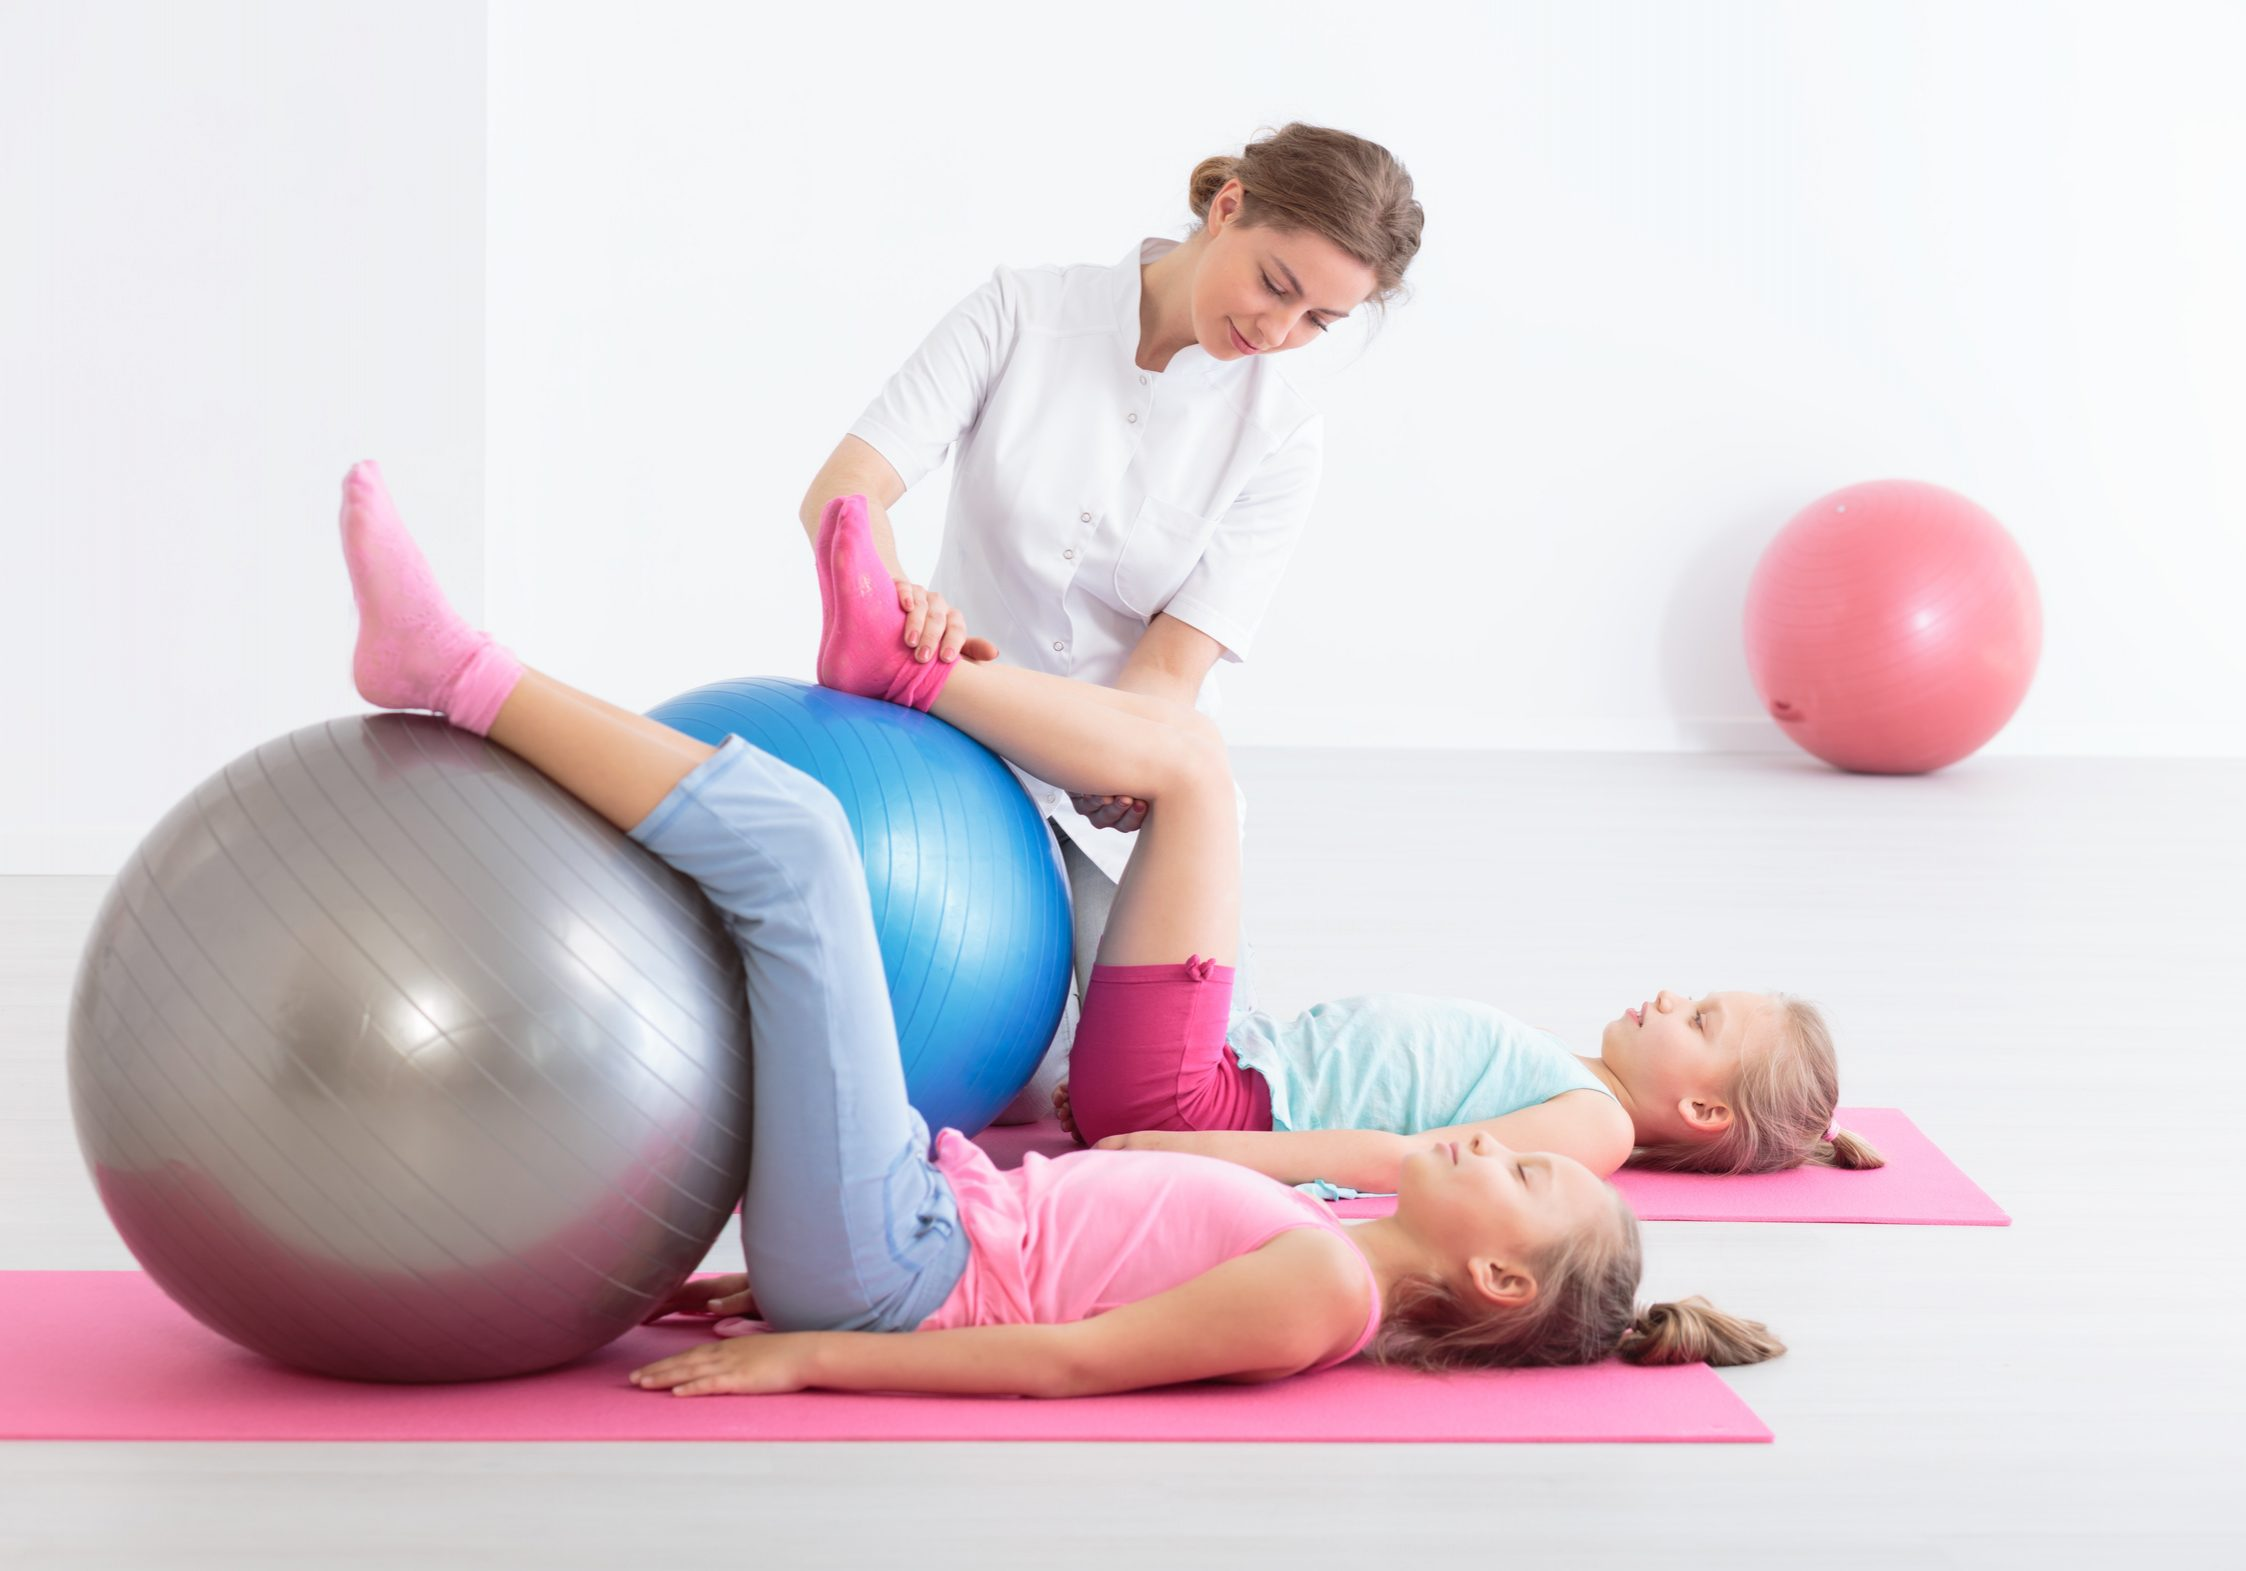 Two school girls lying on exercise mats exercising their legs on balls, accompanied by a physical therapist